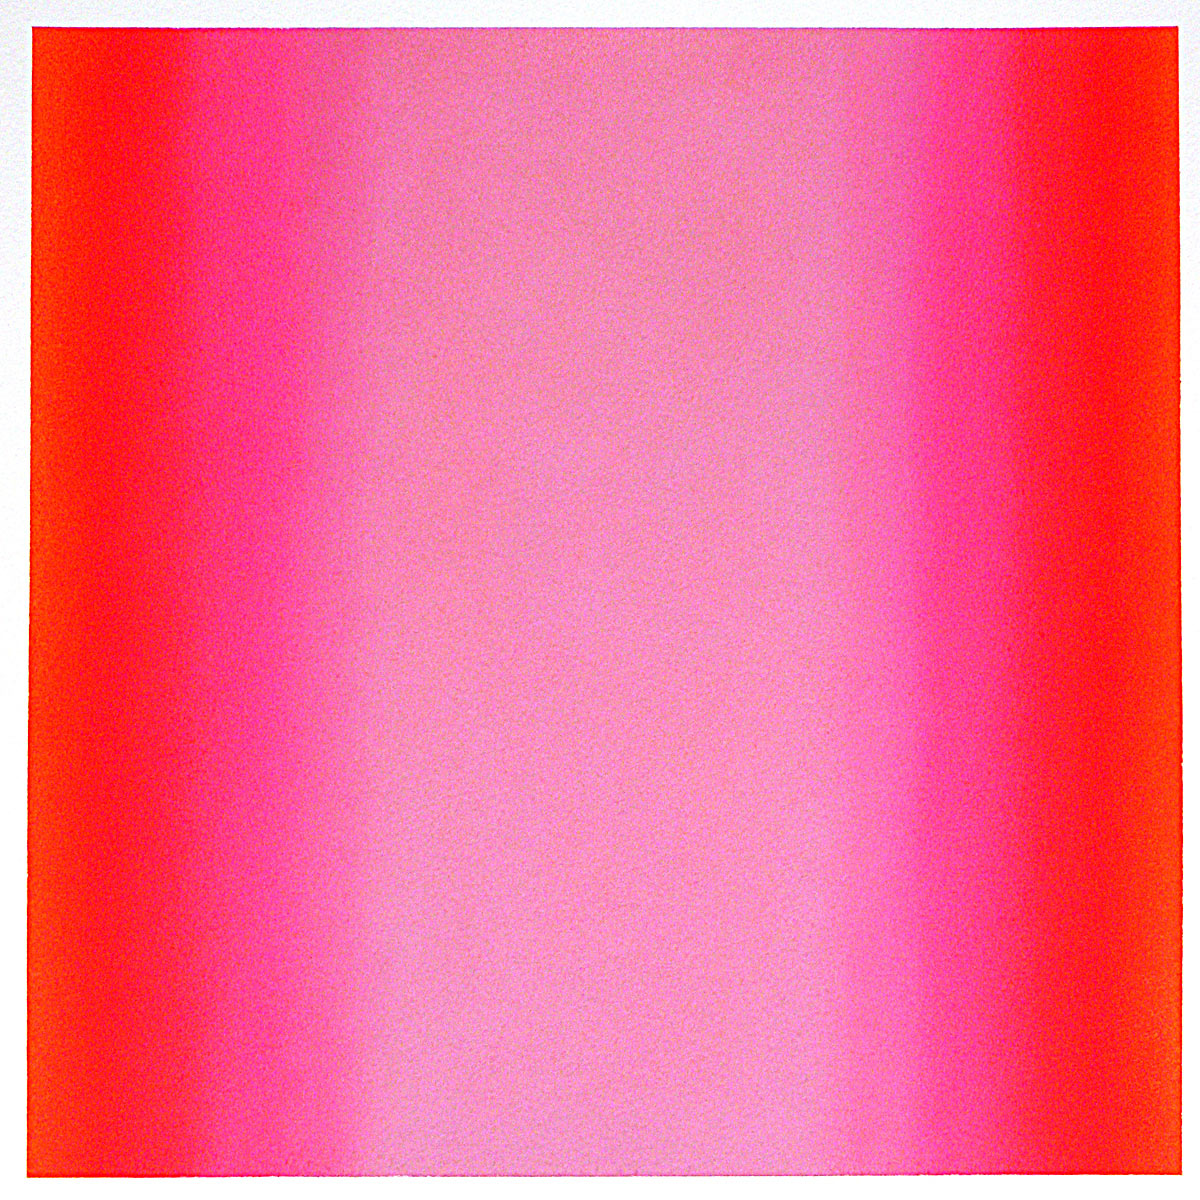 Warm-Light Red-Magenta, Warm-Light Cool-Light Series, 2012, pastel on paper, image: 14 x 14 in. (36 x 36 cm.), sheet: 30 x 22 in. (76 x 56 cm.)